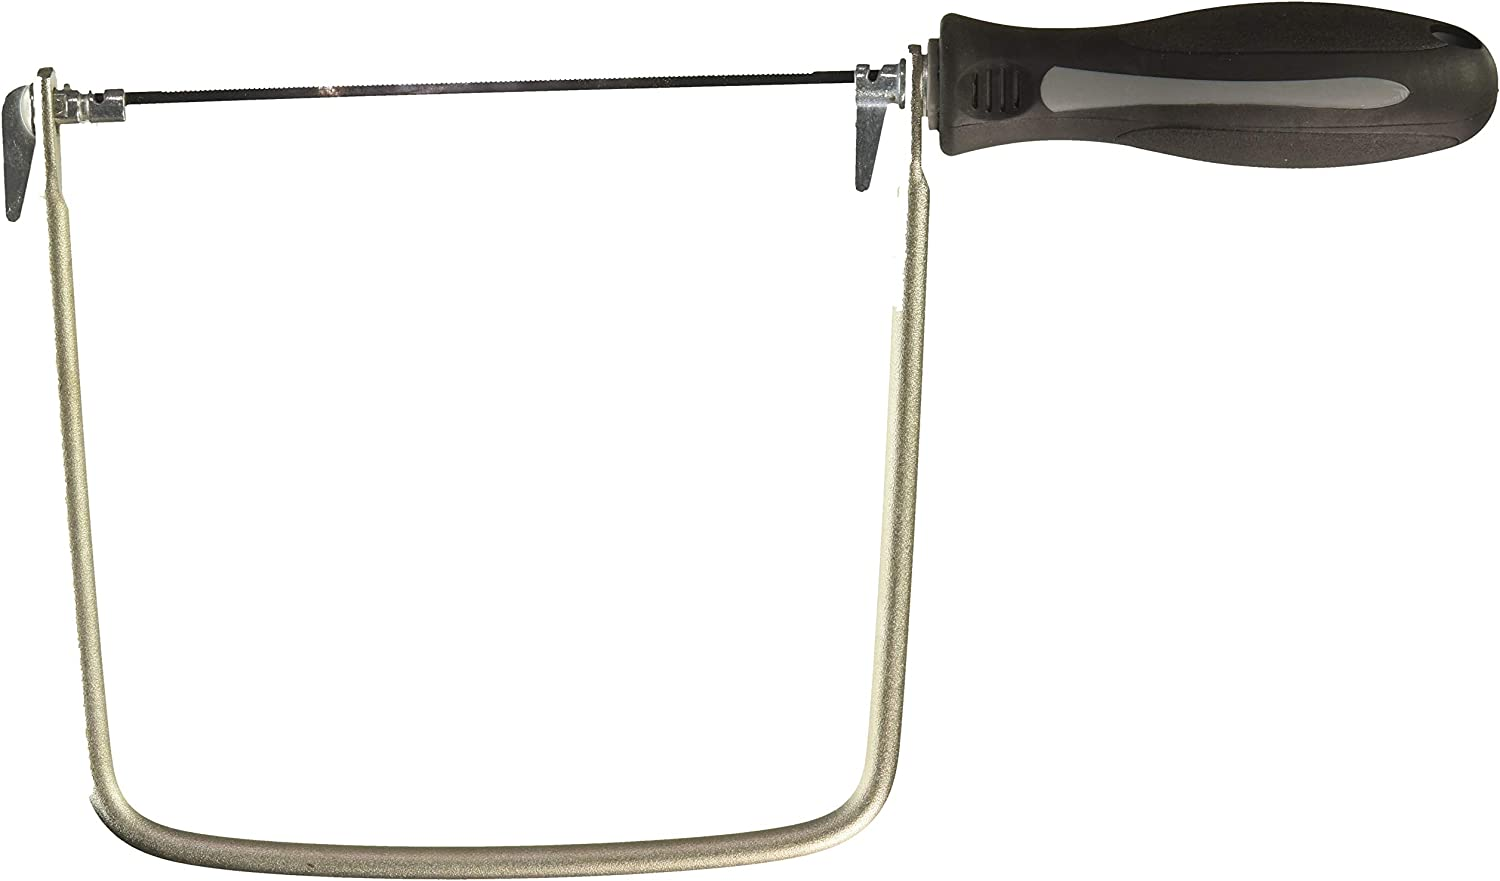 HANGZHOU GREAT STAR INDUST Coping Saw, Soft-Grip Handle, 6-1 2-In, 20-TPI B000BOC4BS | Up-to-date-styling